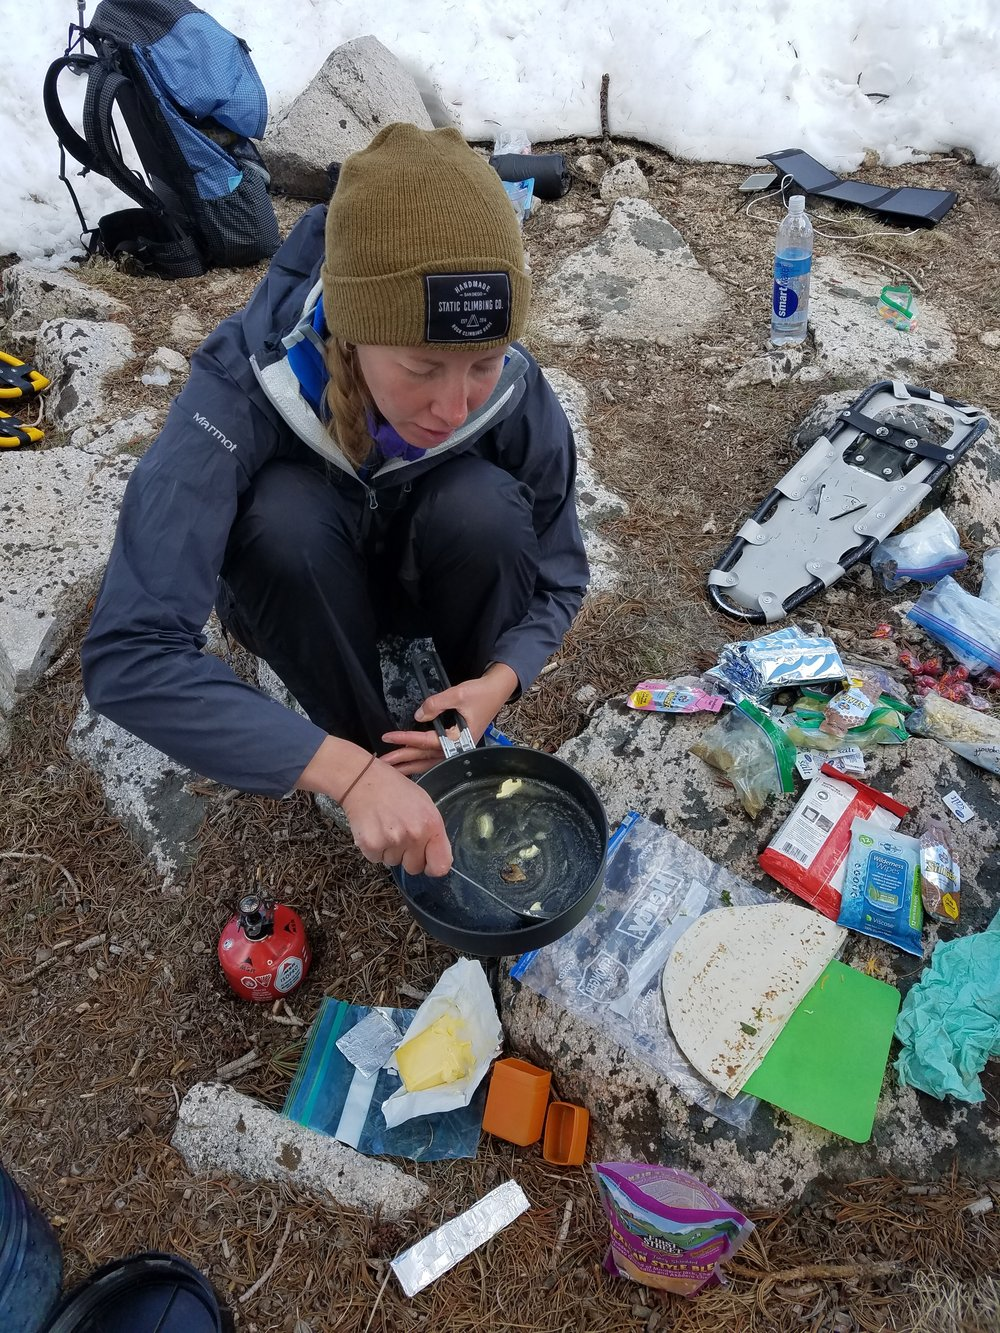 Arch-trail angel Mel whipping up some veggie quesadillas among the resupply tornado.